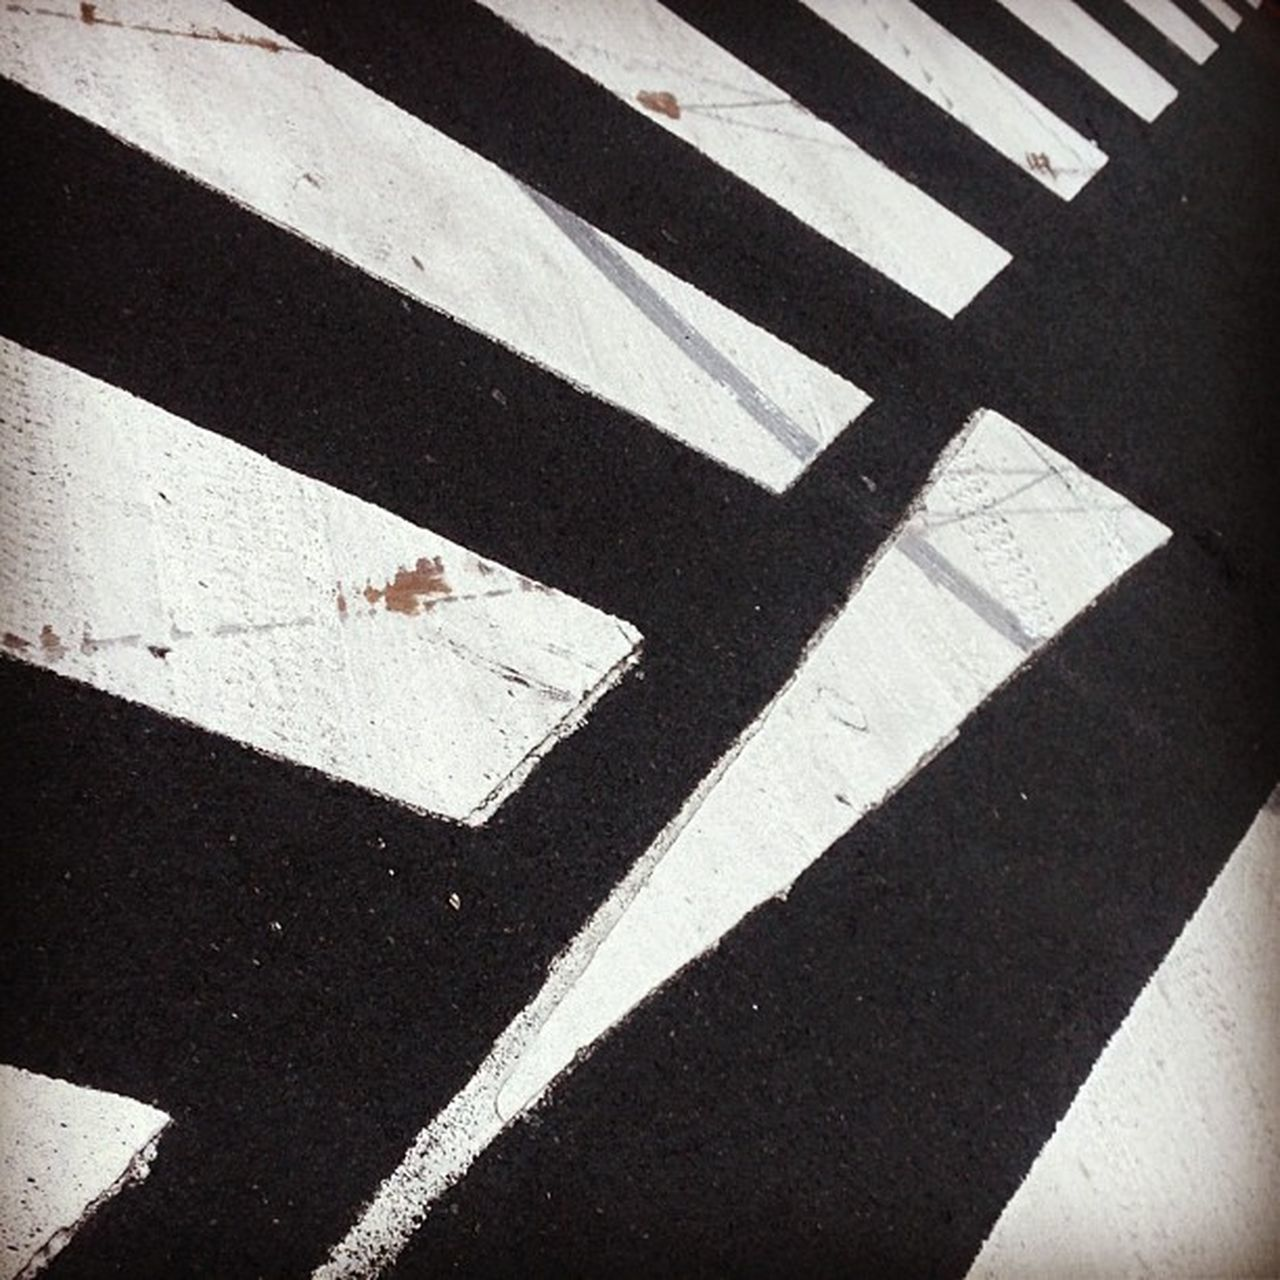 This crossing is too damn sexy to be ignored. So please, don't ignore your crossing. #loveadvise Abstractporn Malevitch Linedesire Constructilove Klovesis Maloveitch Lovechenko Loveadvise Abstract Minimalism Map Minimalist Linegasm Constructivism Rodchenko Klutsis